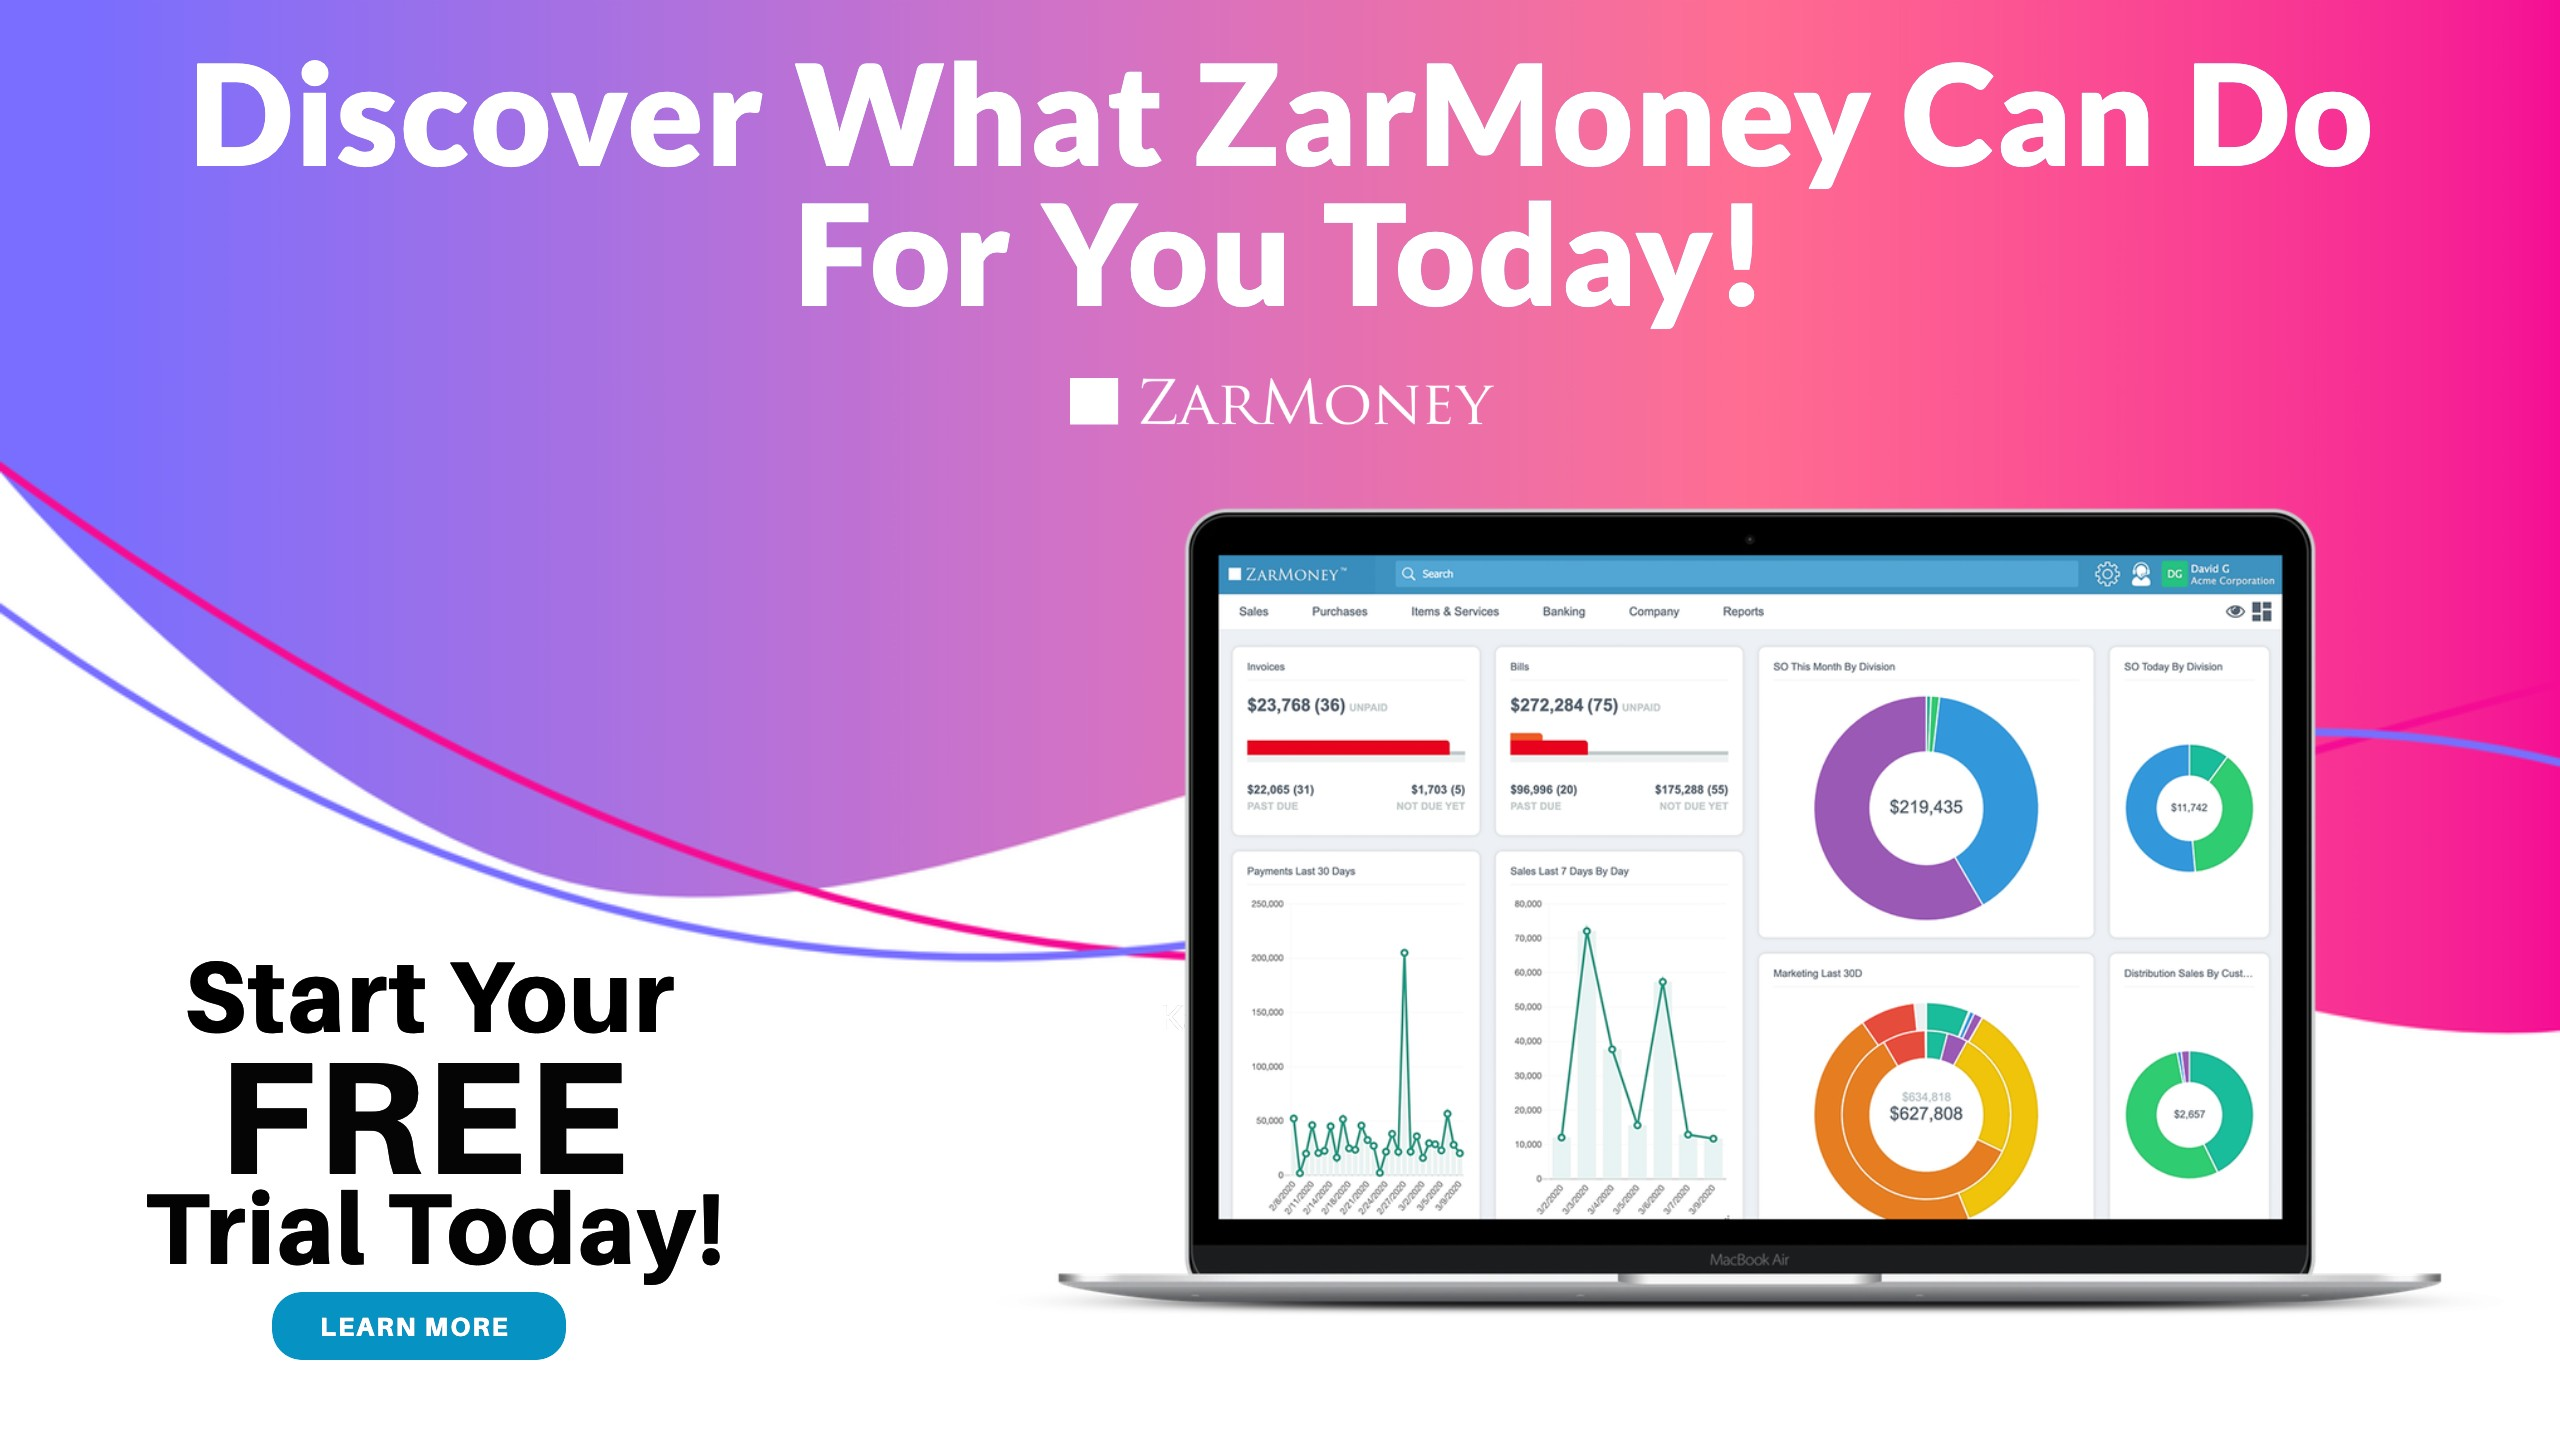 Sign up for your free trial today, and discover what Zarmoney can do for you.